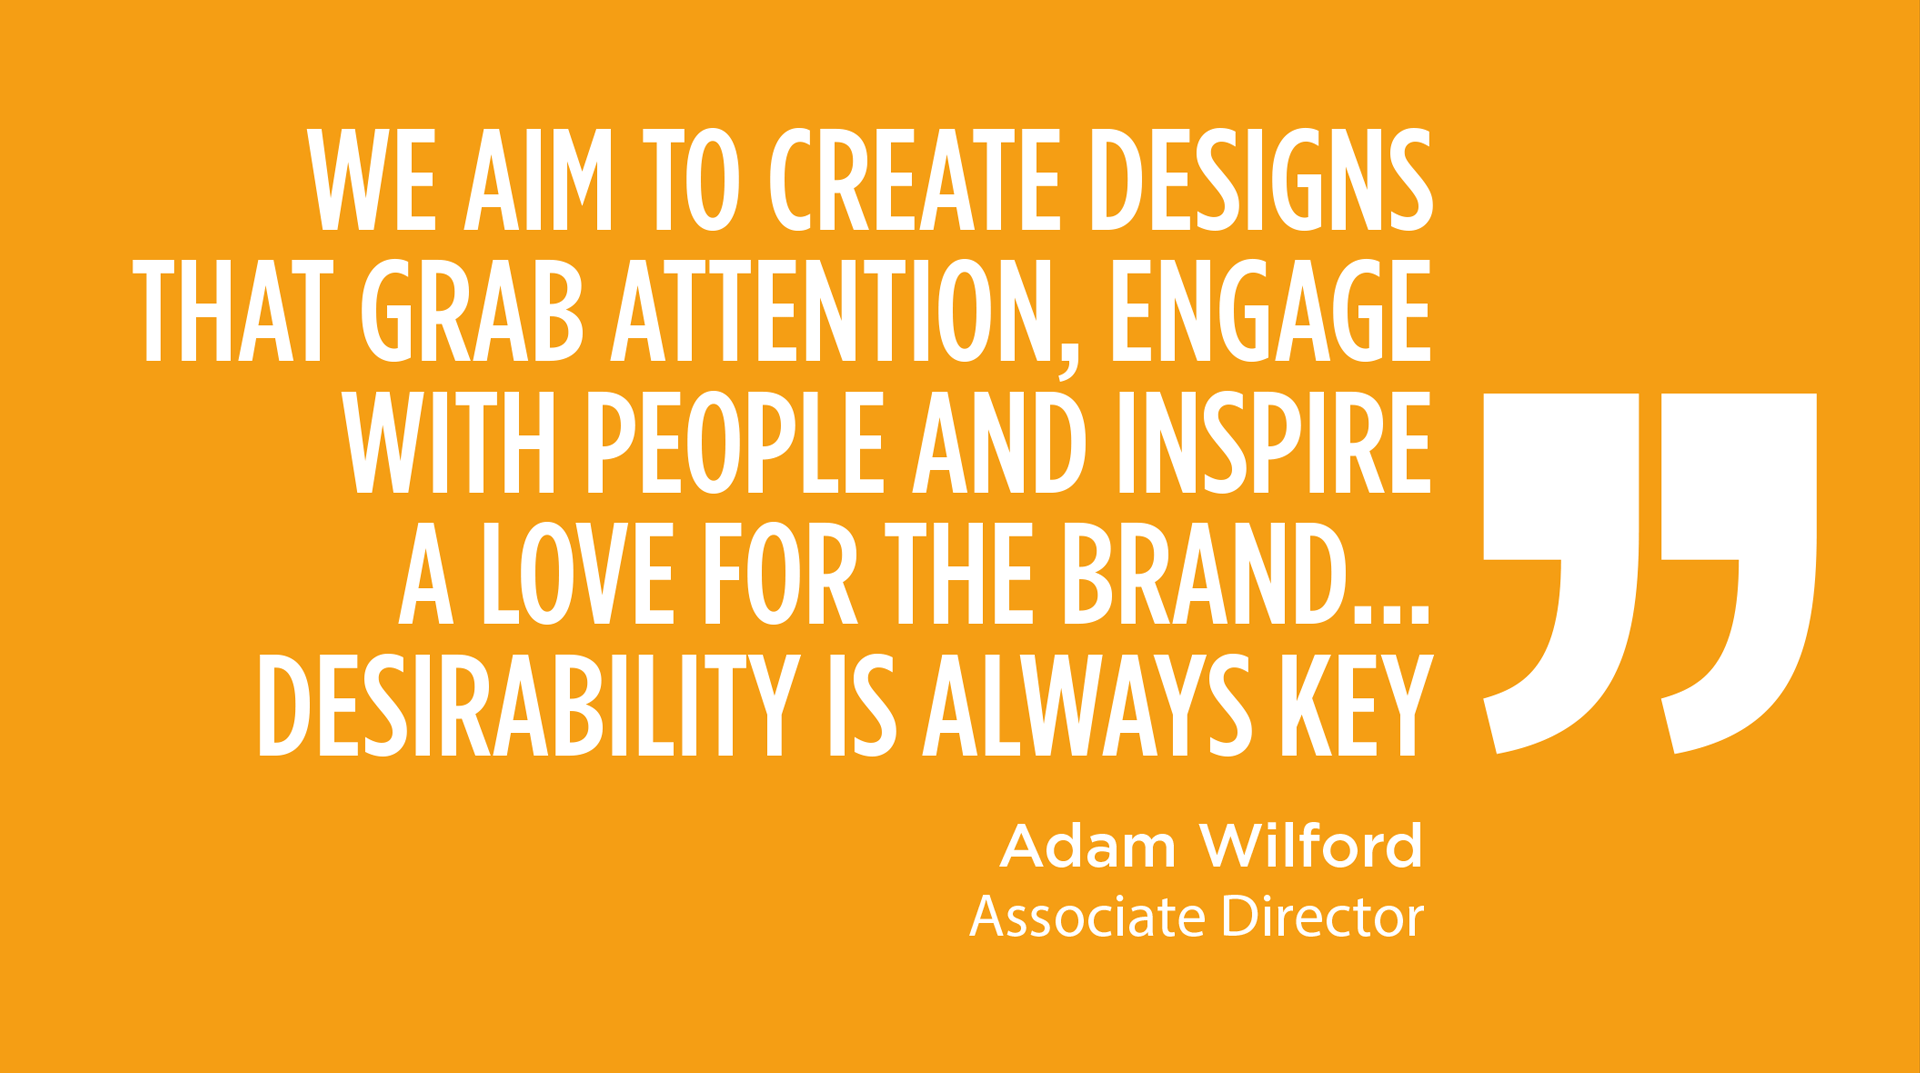 WE AIM TO CREATE DESIGNS THAT GRAB ATTENTION, ENGAGE WITH PEOPLE AND INSPIRE A LOVE FOR THE BRAND... DESIRABILITY IS ALWAYS KEY - Adam Wilford, Associate Director